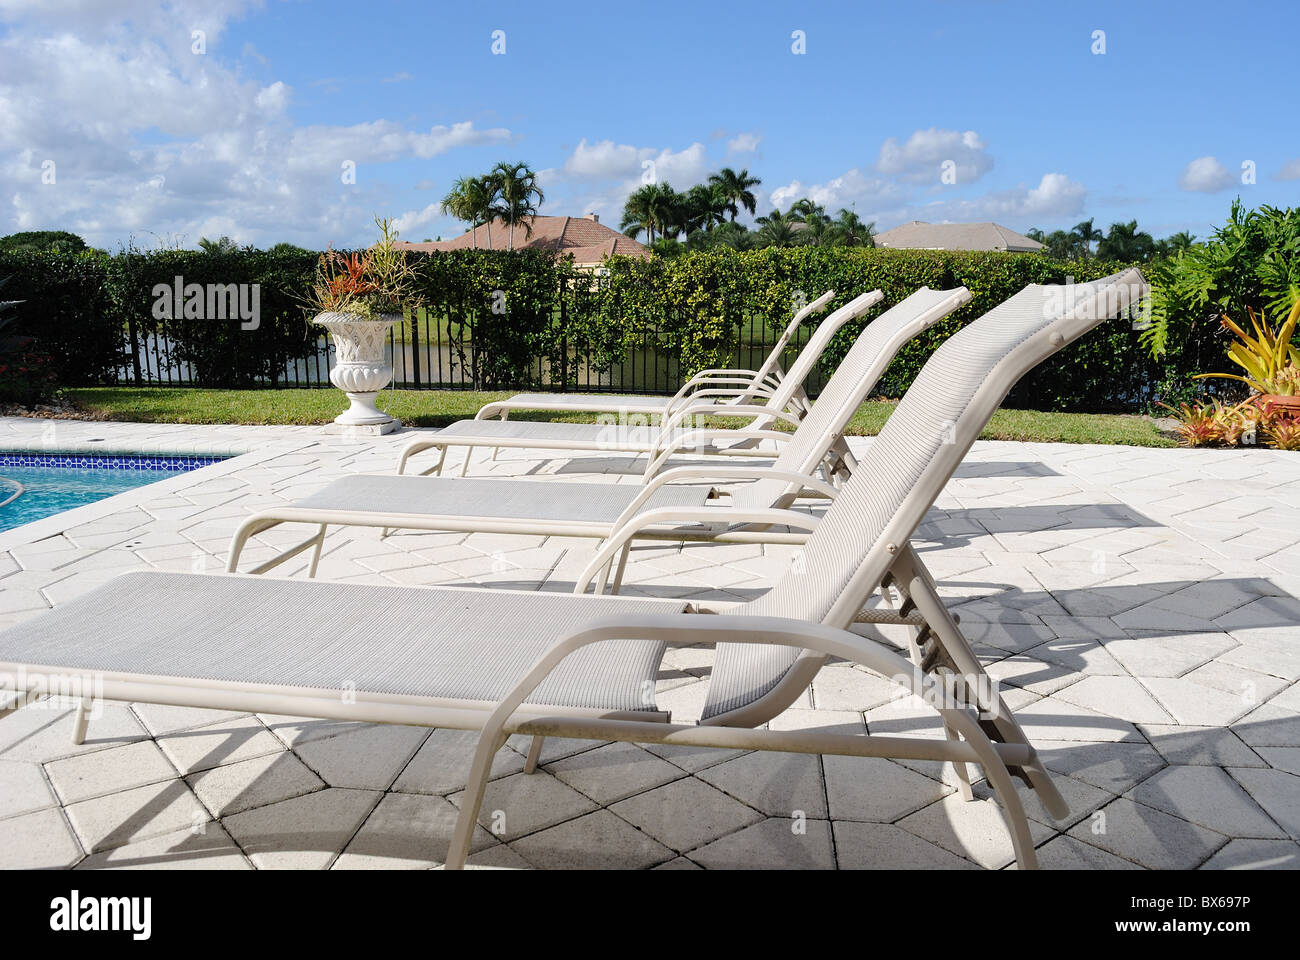 Poolside Lounge Chairs - Stock Image